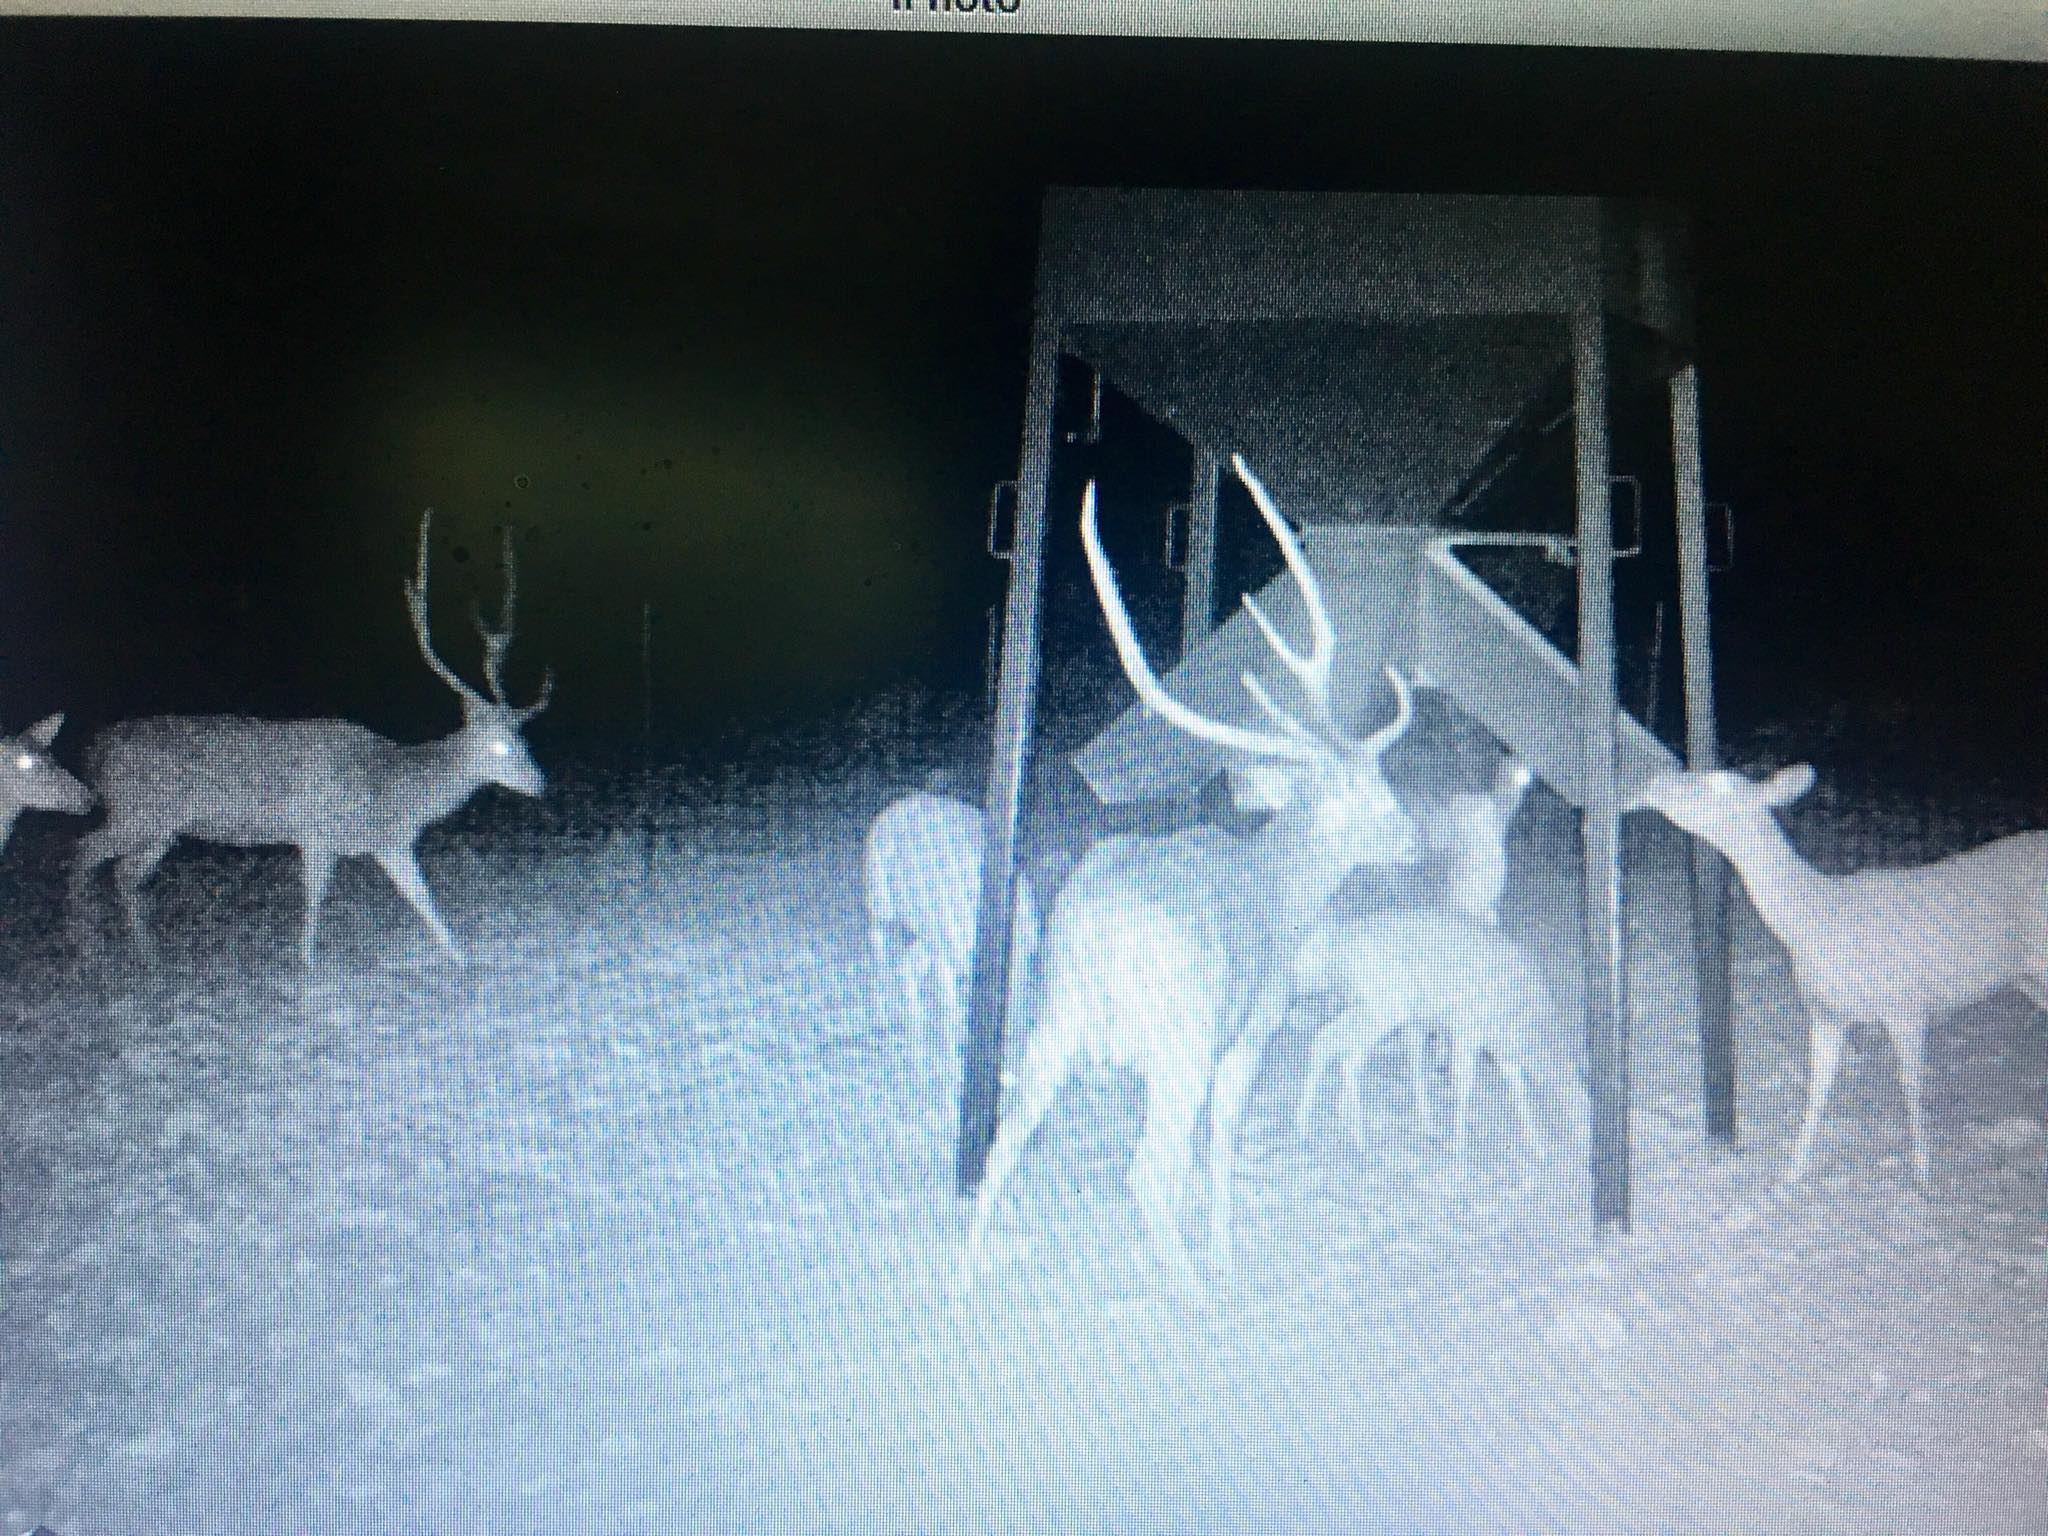 Baker 3 ranch night vision camera shot of axis deer